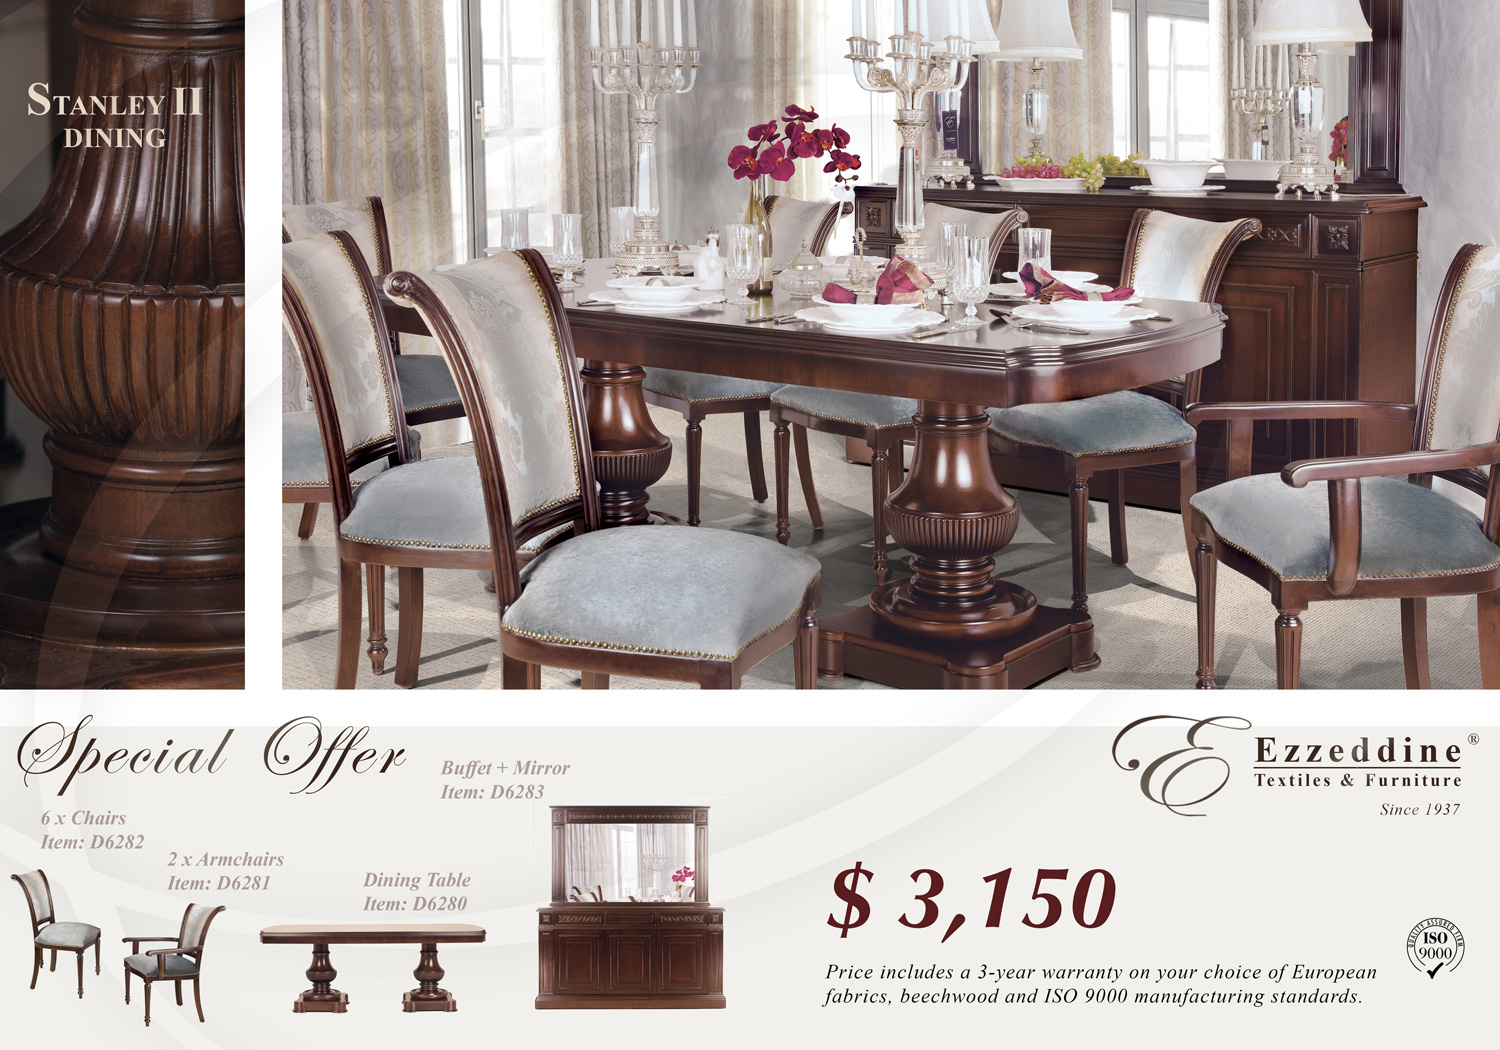 limited time offer - dining room - ezzeddine , neo classical